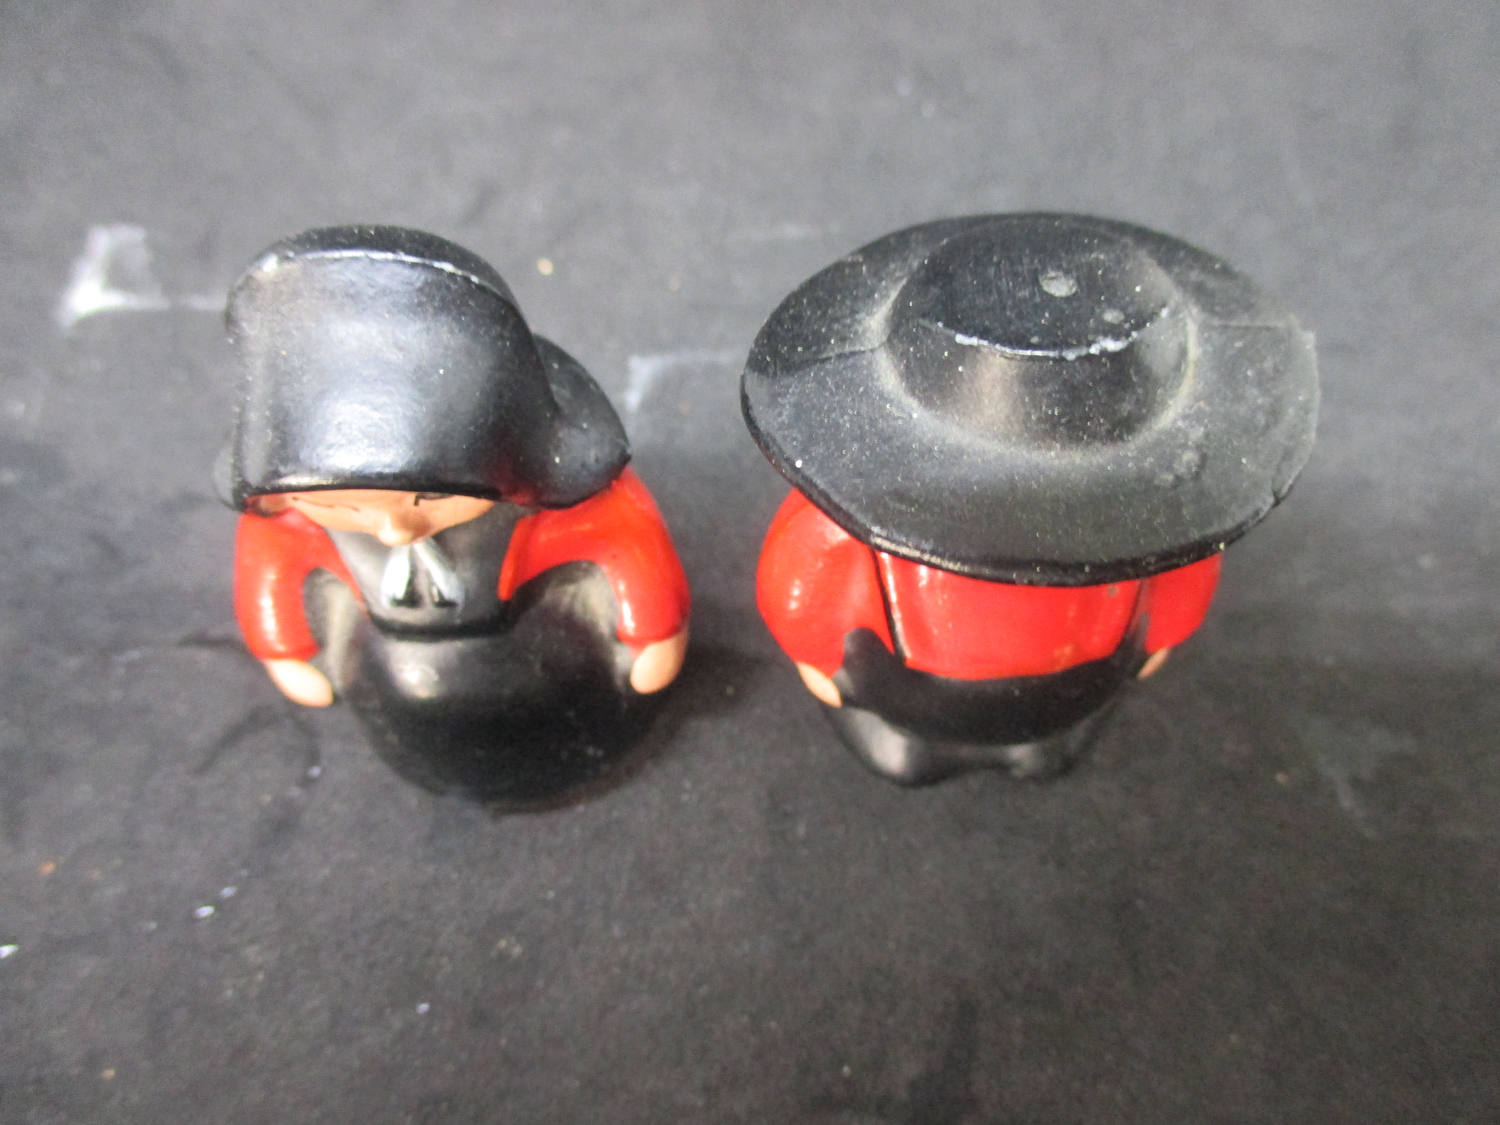 Cast Iron Amish Man and Woman Salt & Pepper Shakers decor collectible display tableware dinning kitchen farmhouse cottage